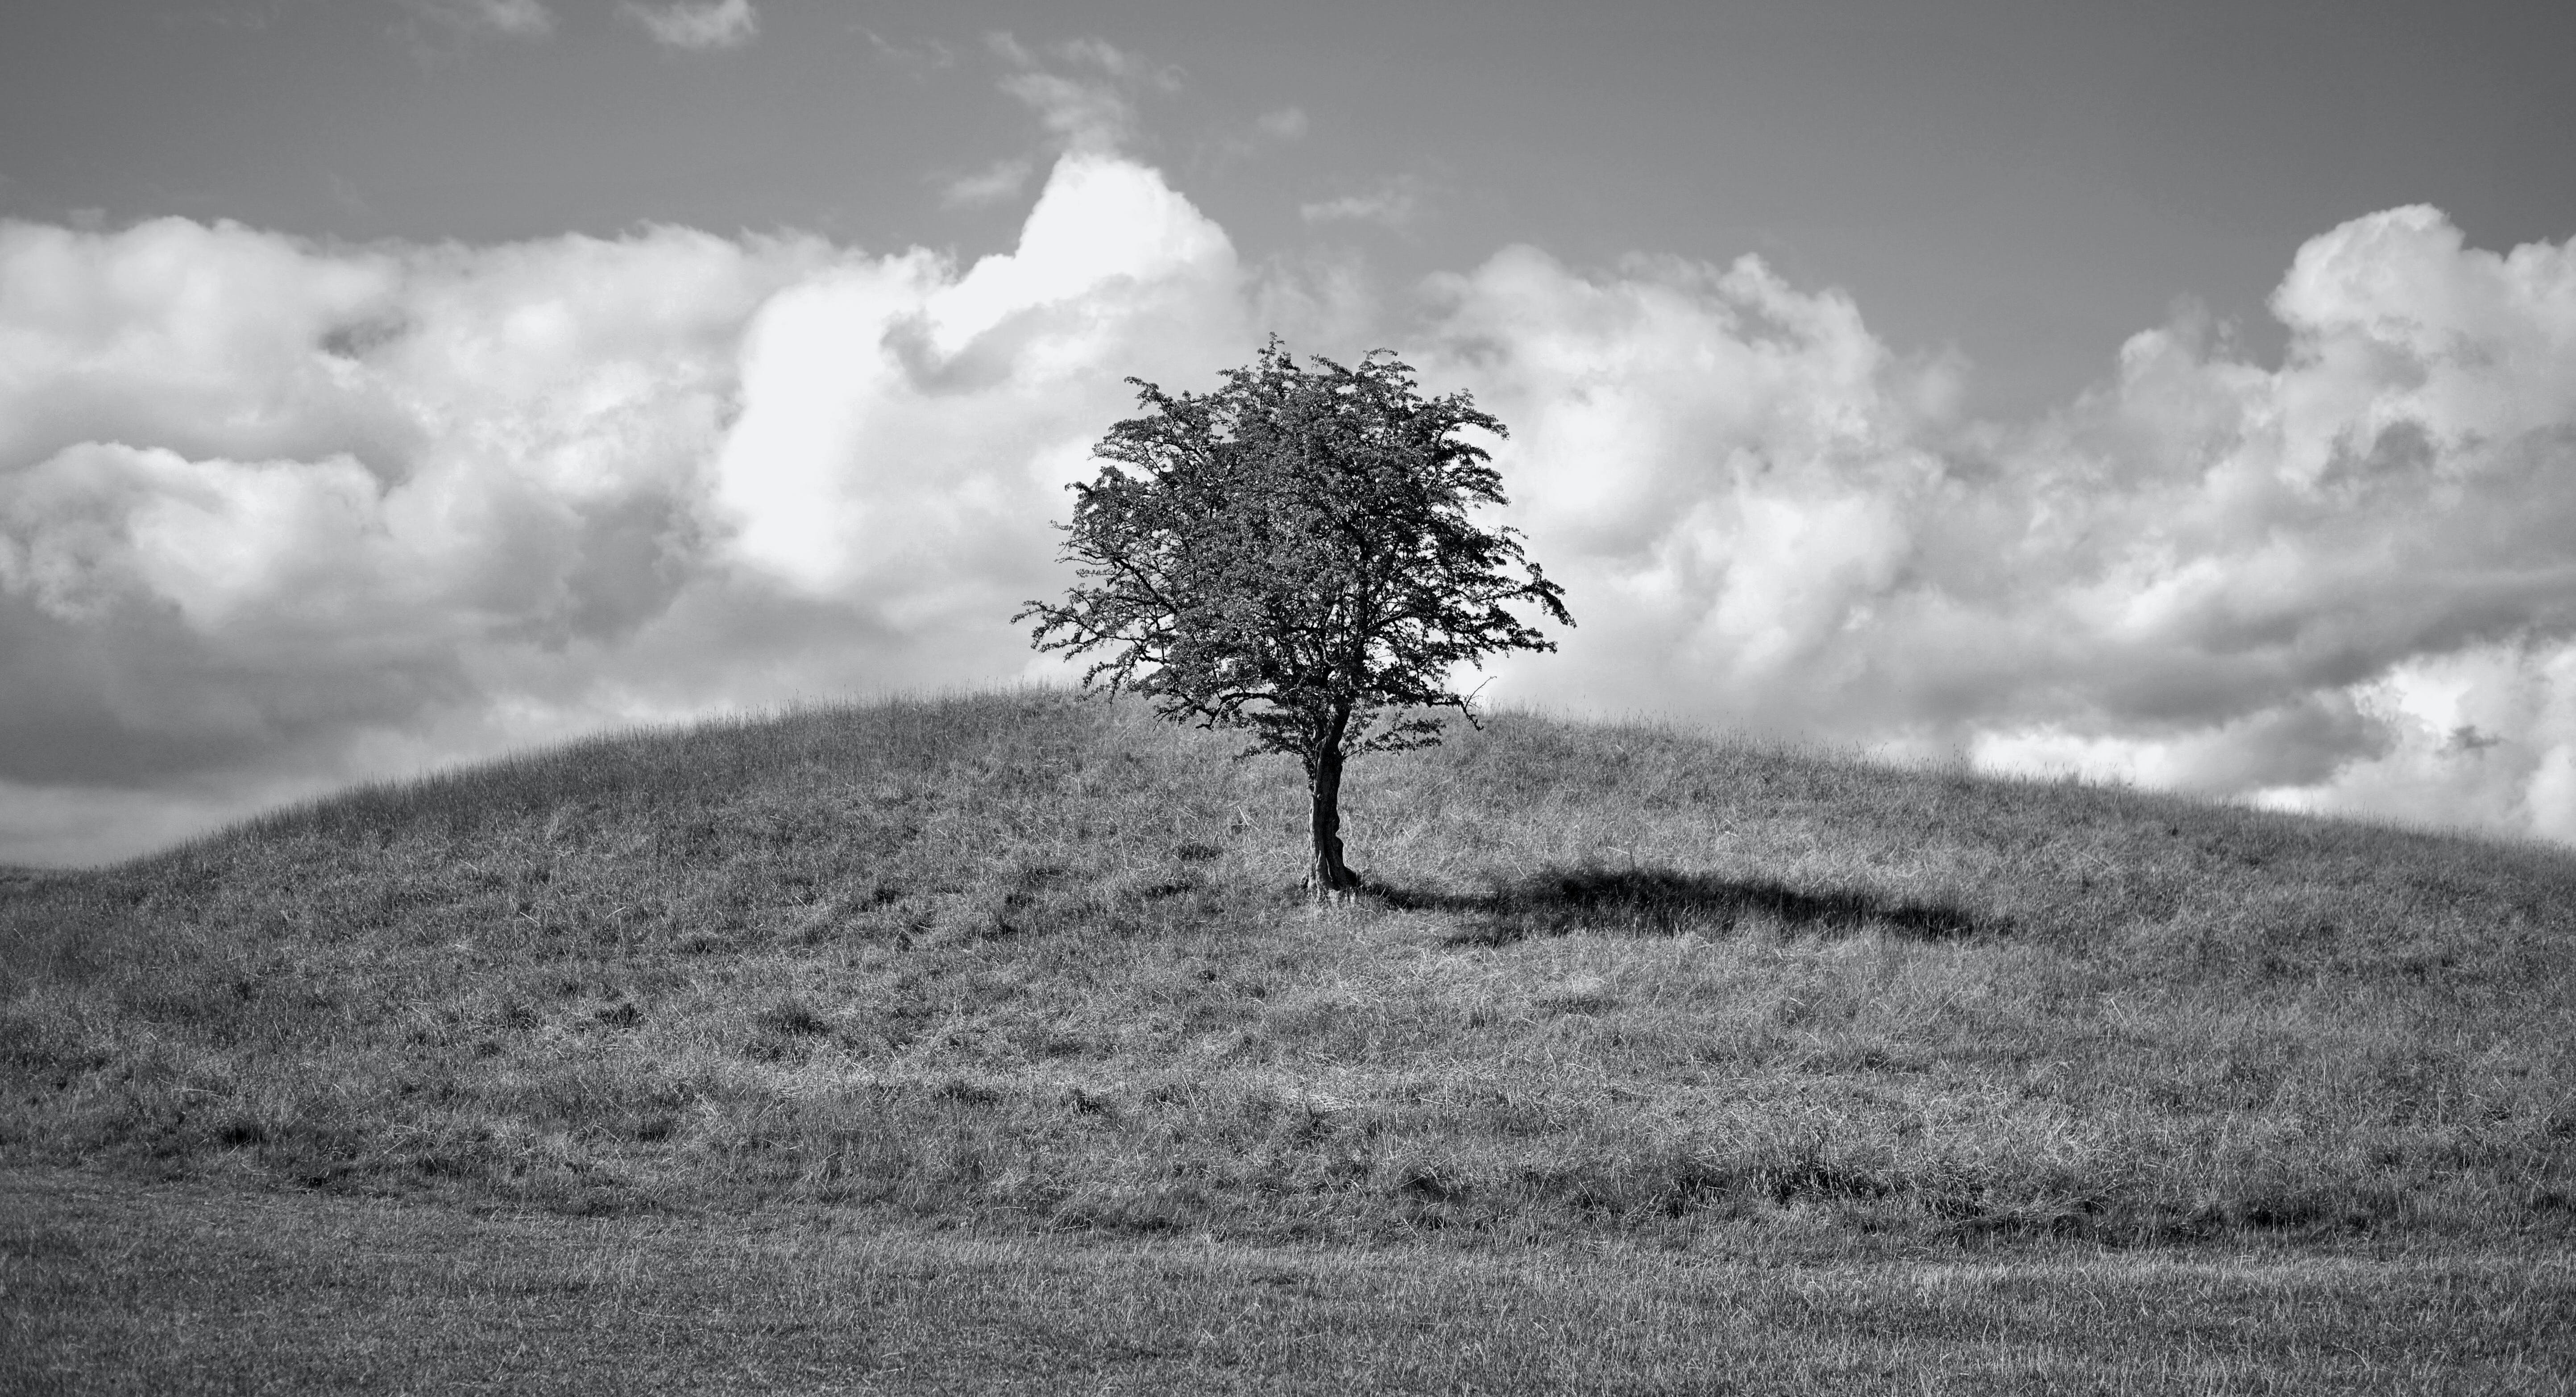 Monochrome Photo of a Tree on Hill